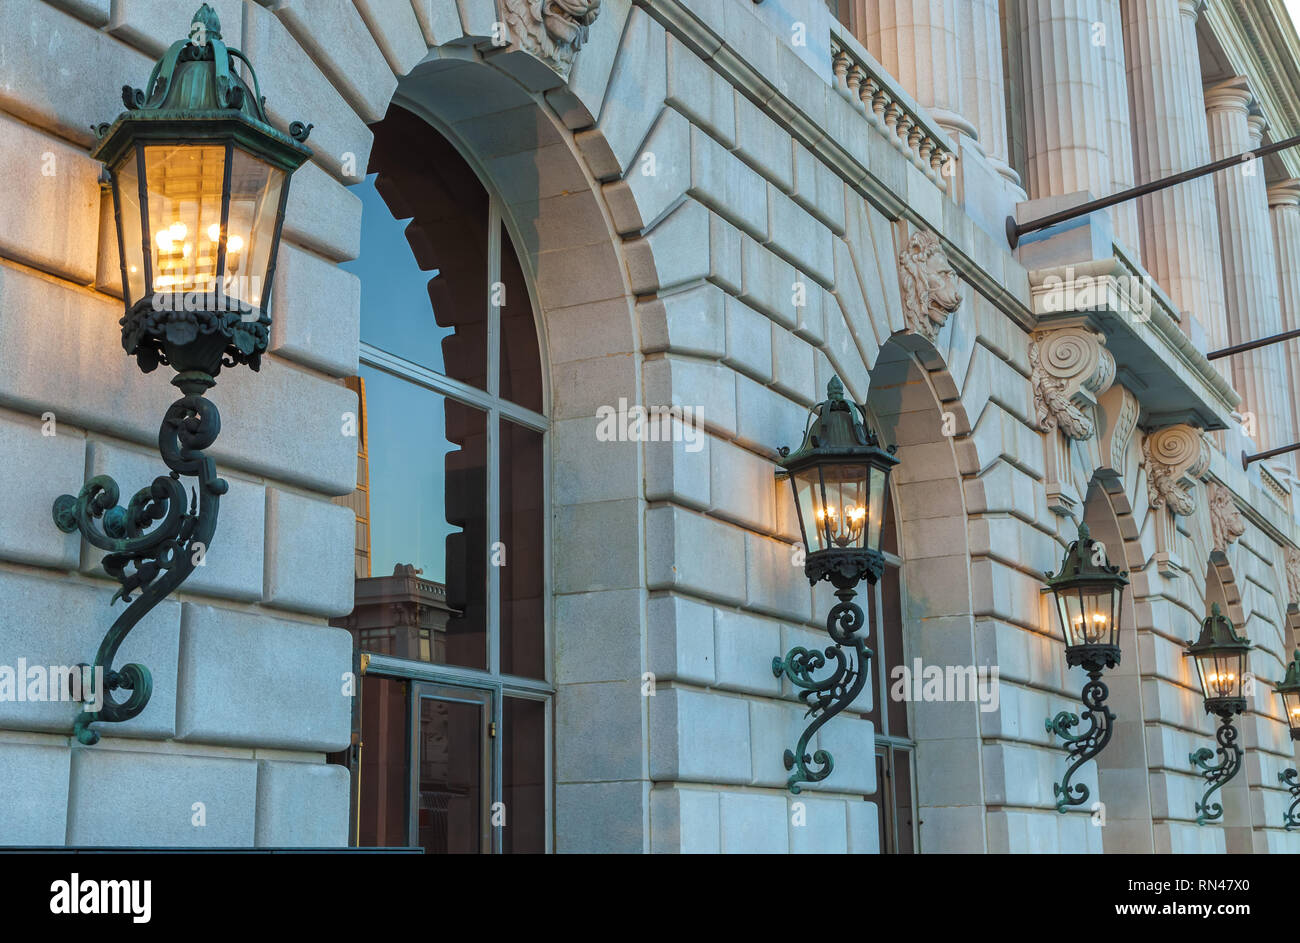 Beautiful wall sconces at the War Memorial Opera House in San Francisco,California, United States. - Stock Image